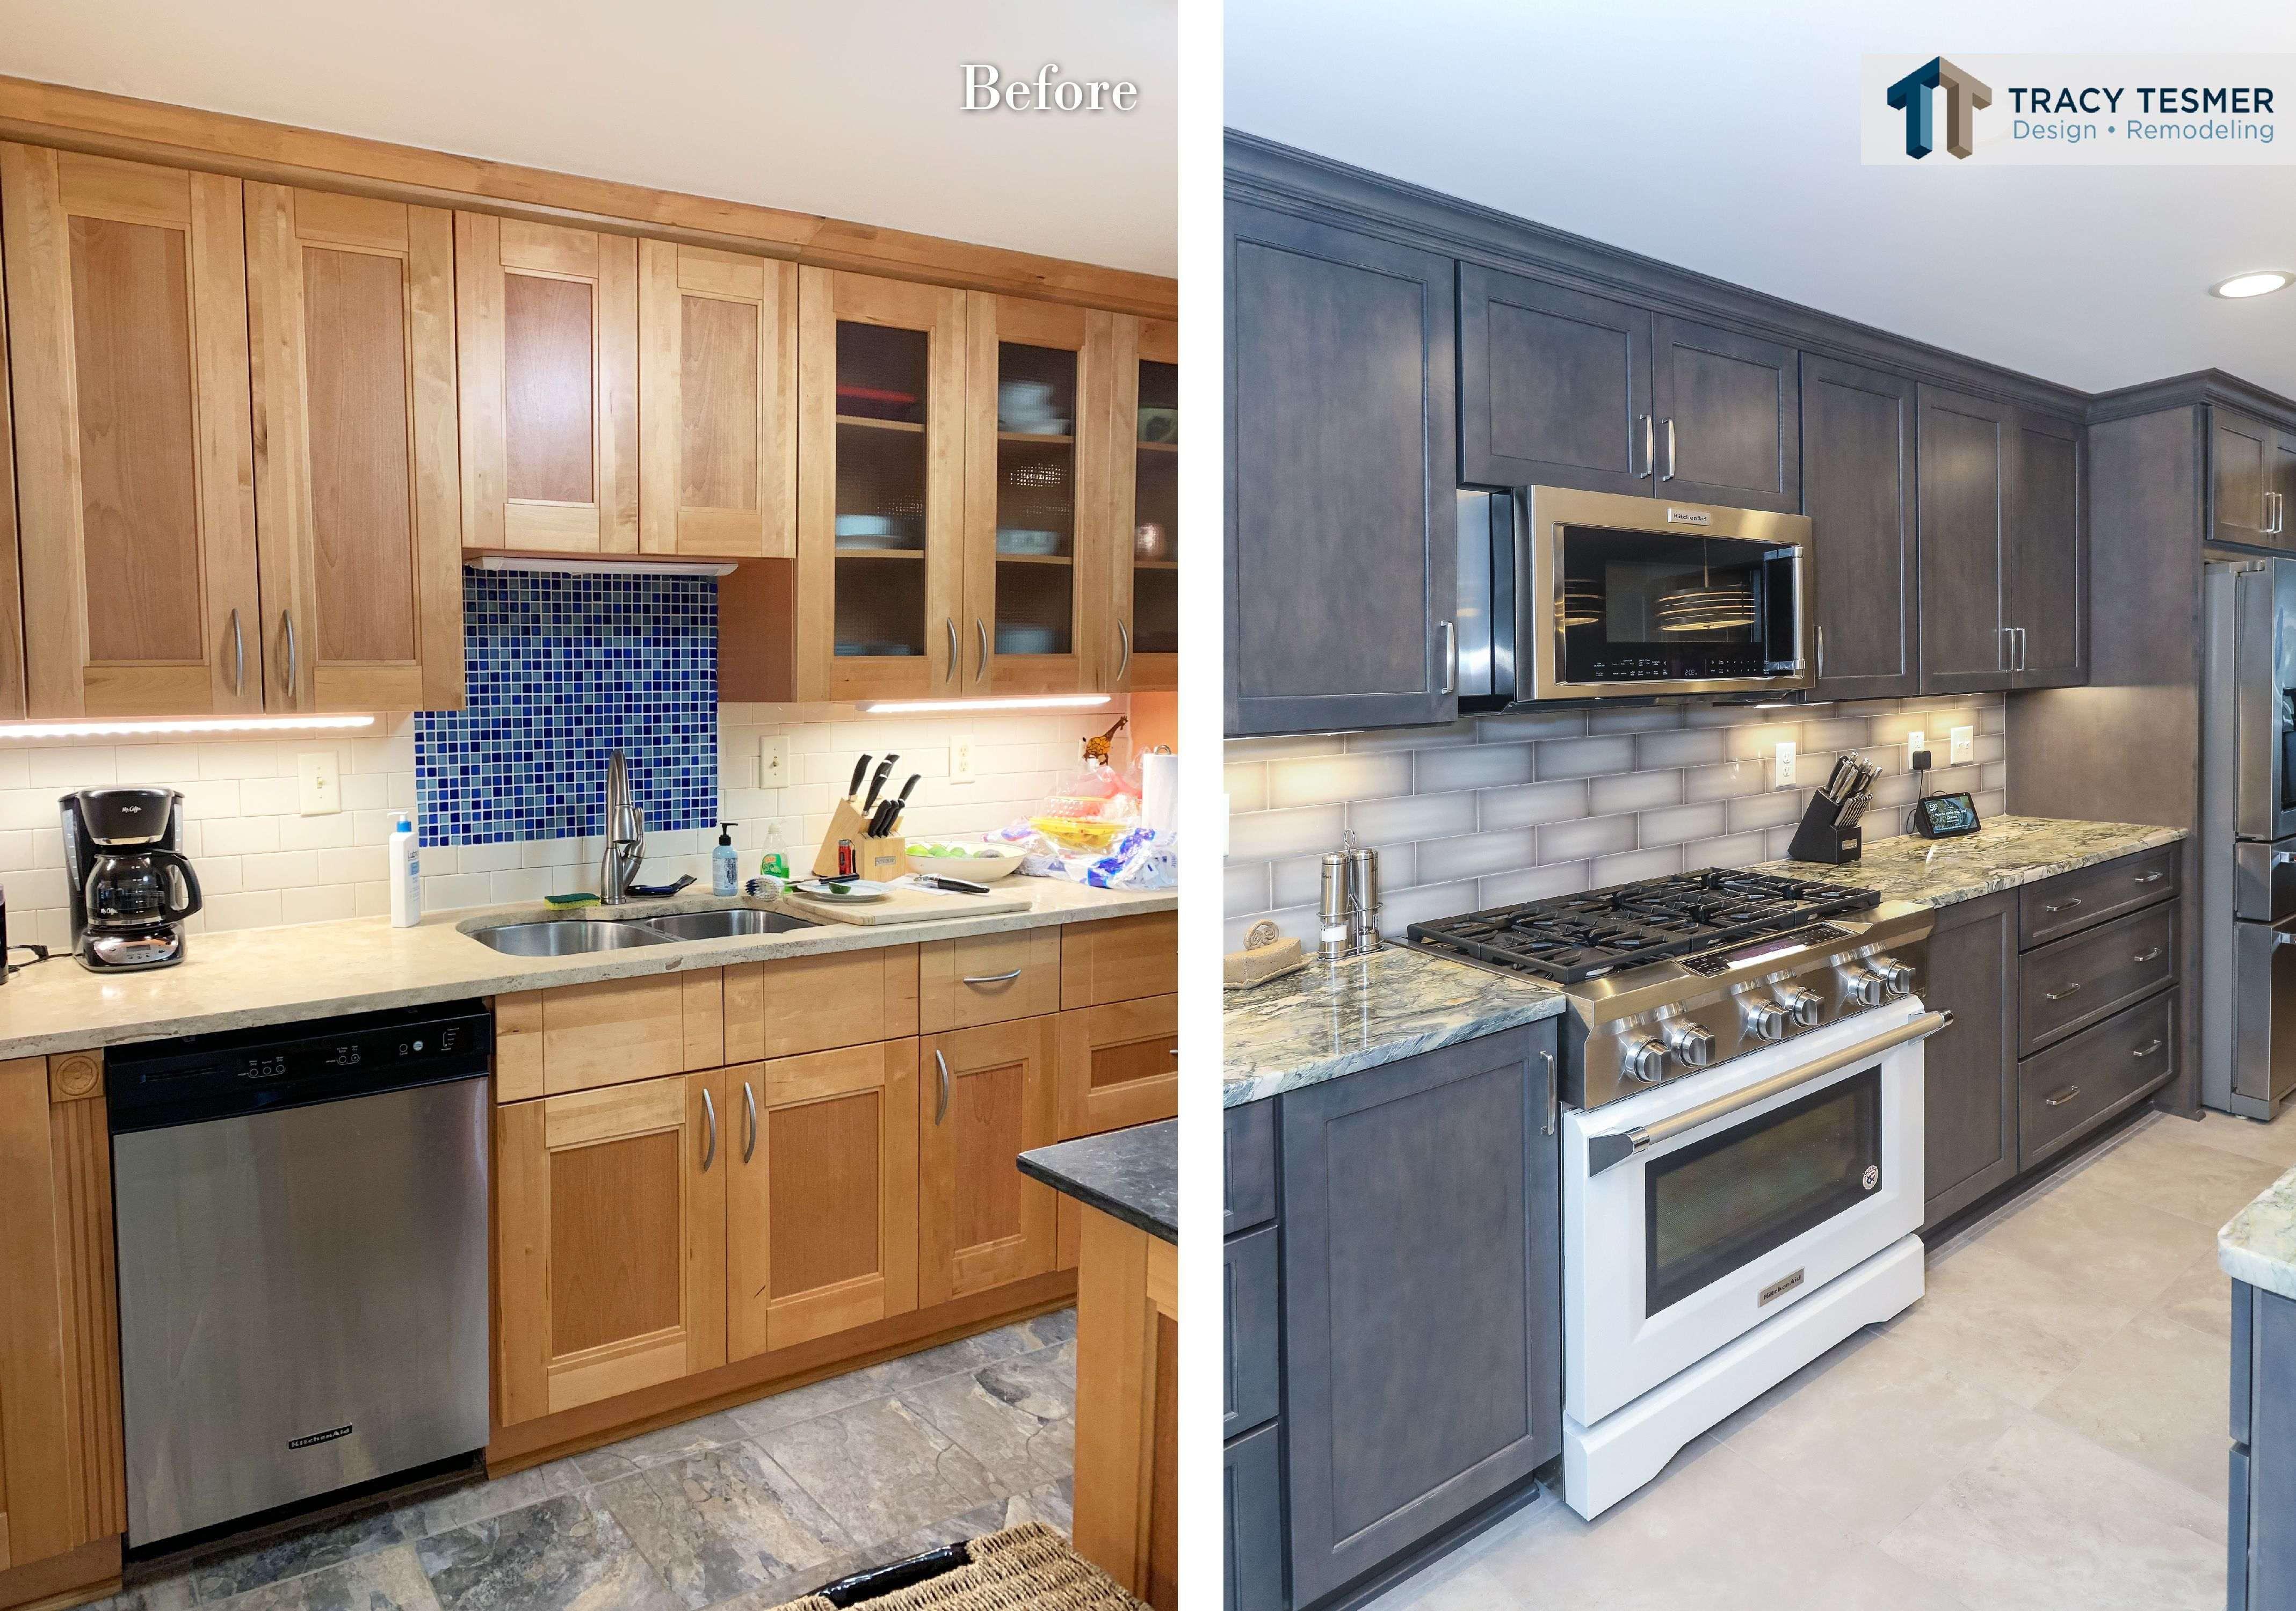 Kitchen Cabinets Before And After In 2020 Kitchen Remodel Cost Kitchen Cabinets Before And After Kitchen Remodel